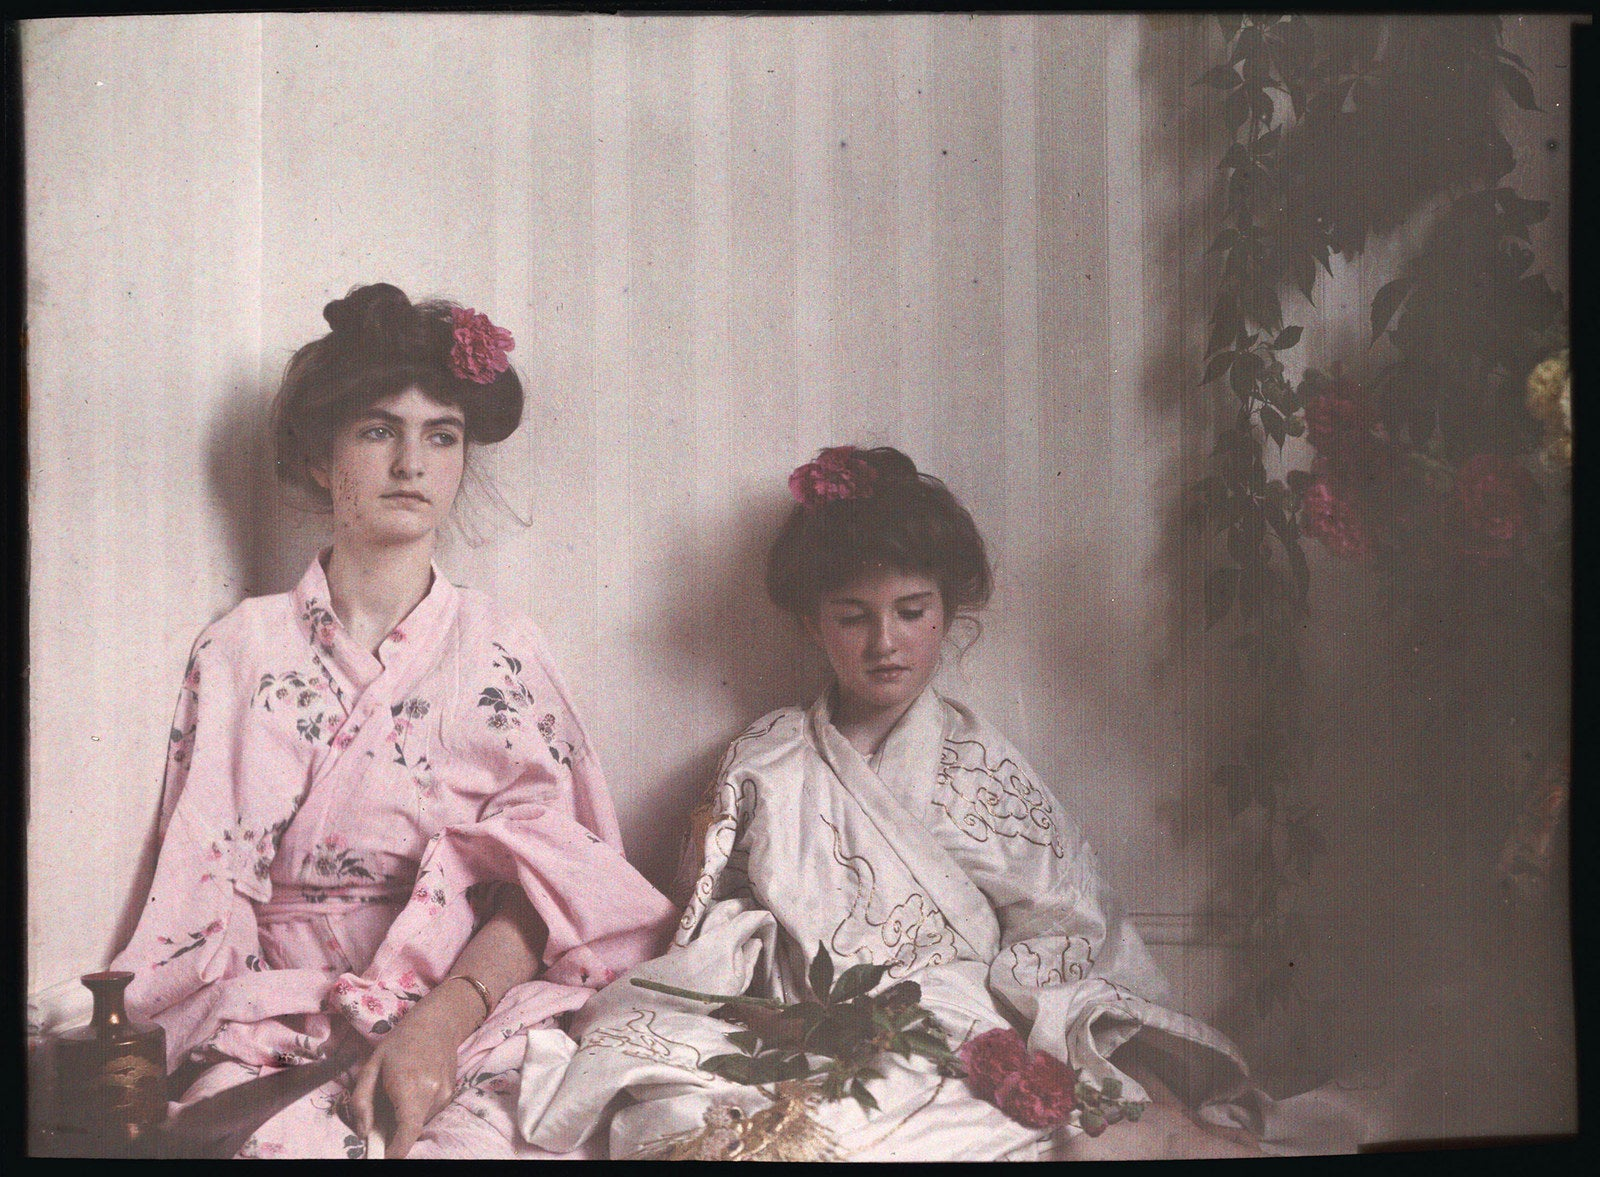 Autochrome by Etheldreda Janet Laing, 1908.